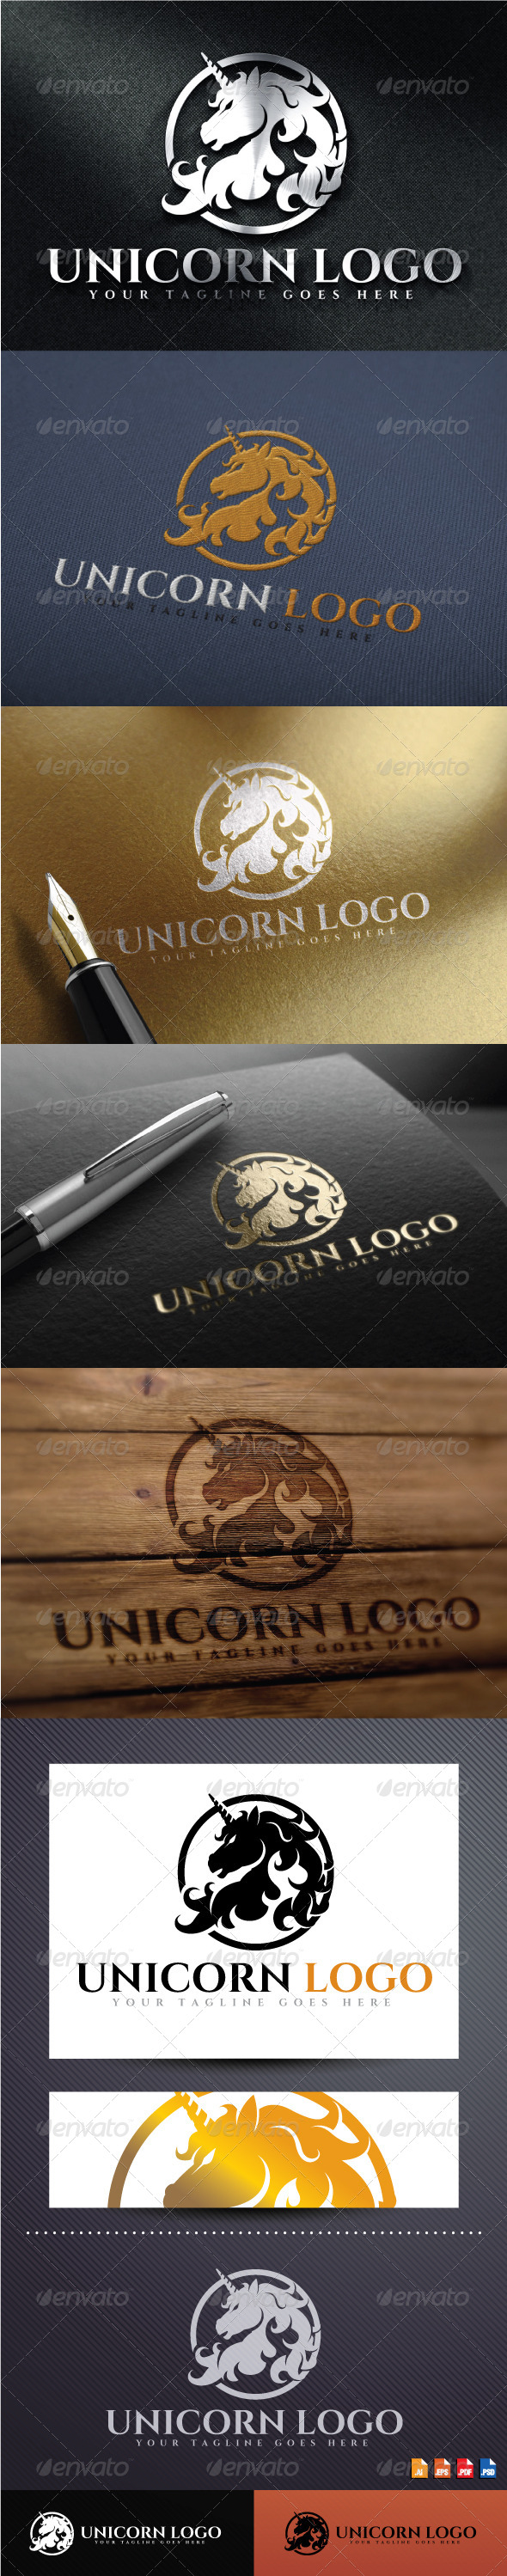 GraphicRiver Unicorn Logo 8645836